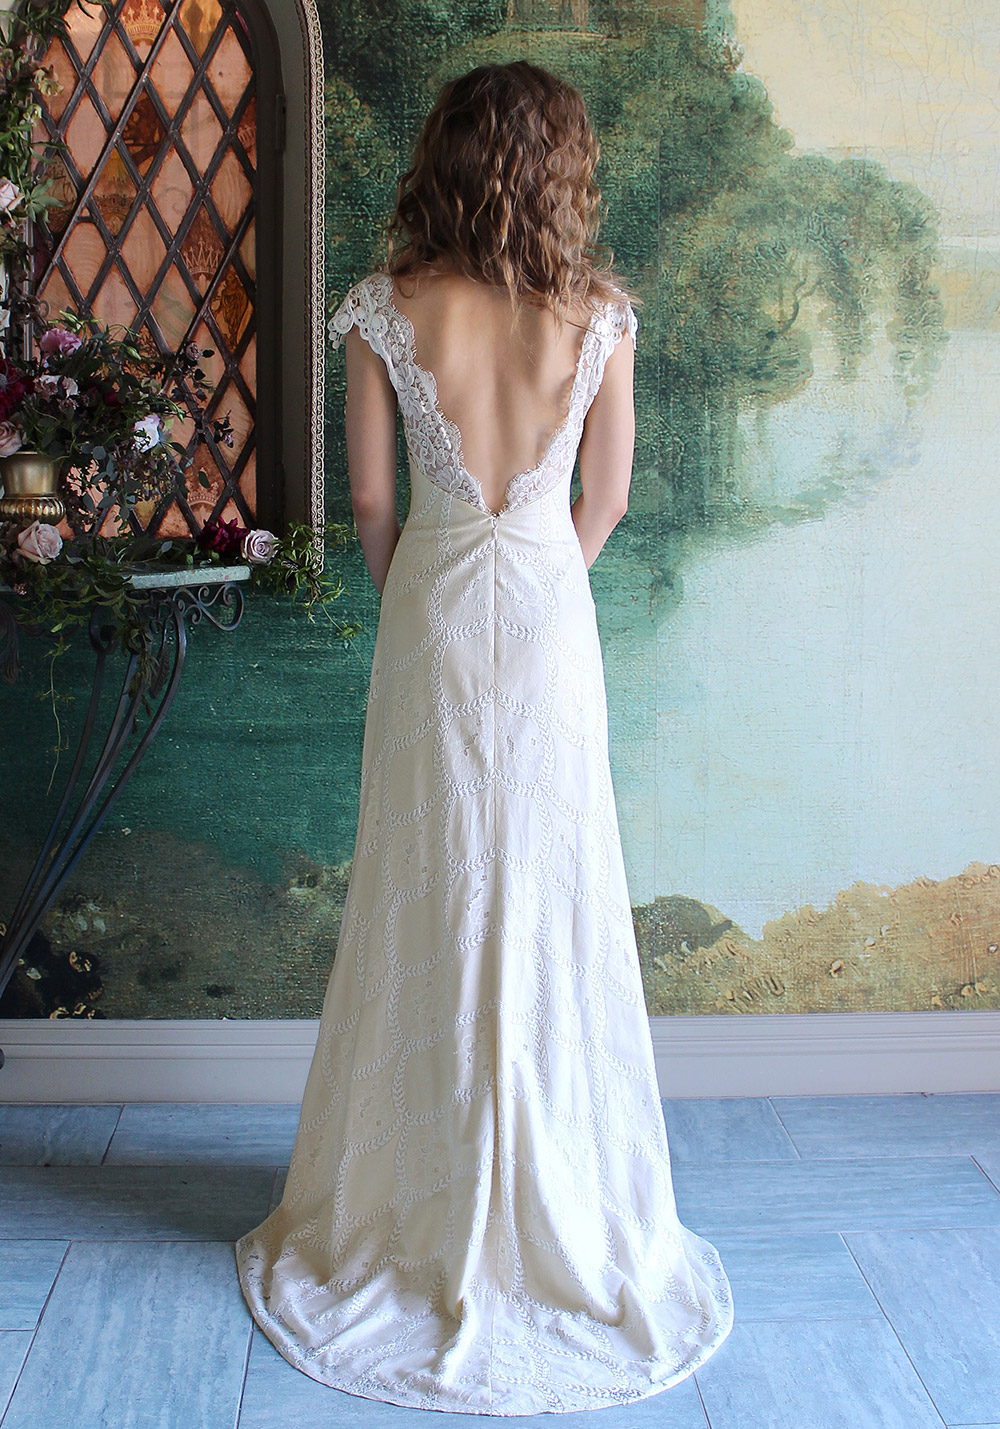 Montana - Romantique 2016 Collection. www.theweddingnotebook.com